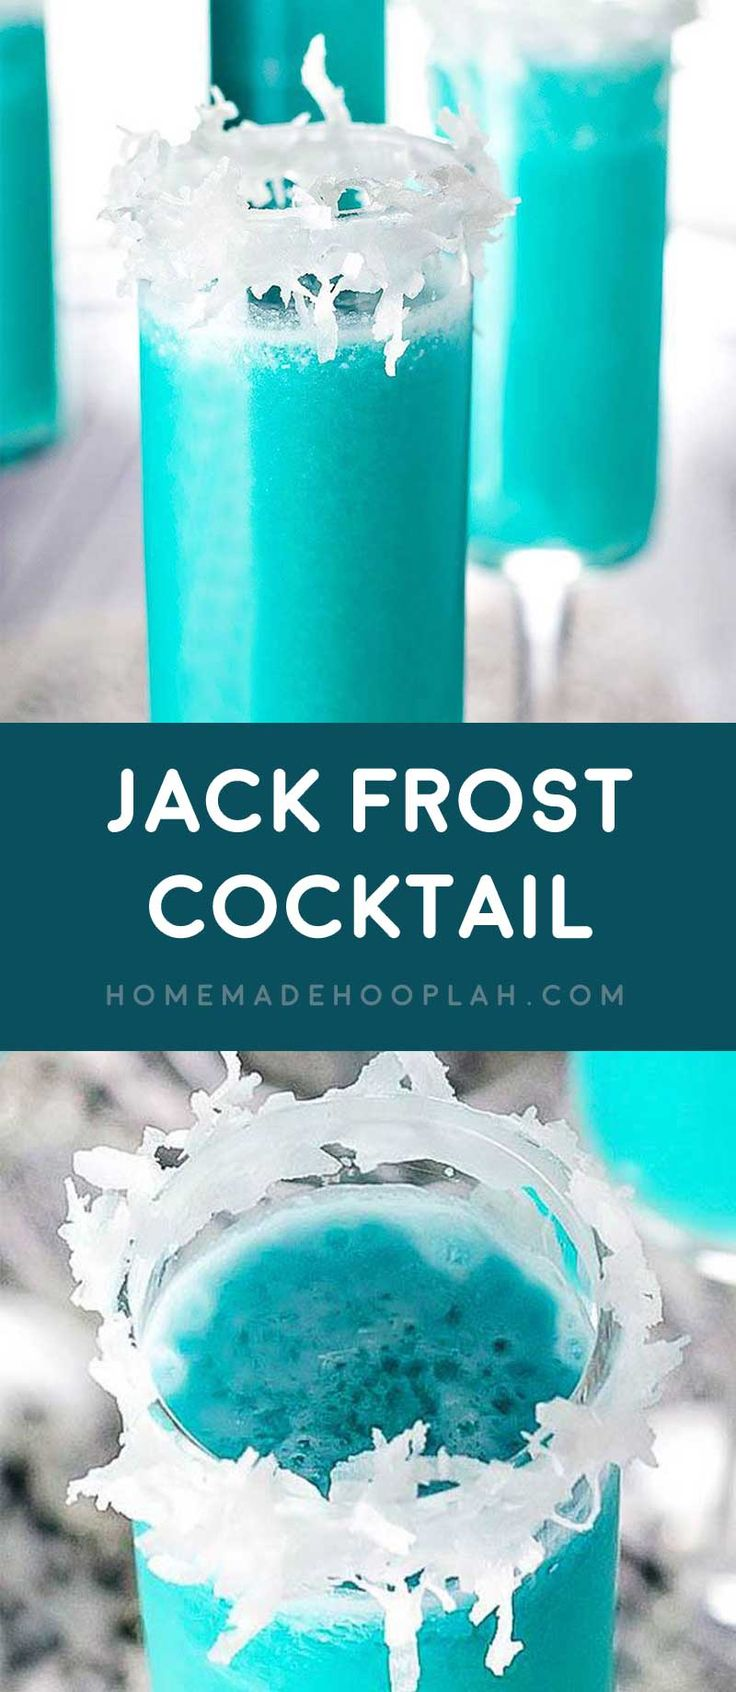 Jack Frost Cocktail! This winter cocktail is a festive version of the piña colada! Blue curacao and shredded coconut help give this drink it's wintry flair. | HomemadeHooplah.com via @homemadehooplah